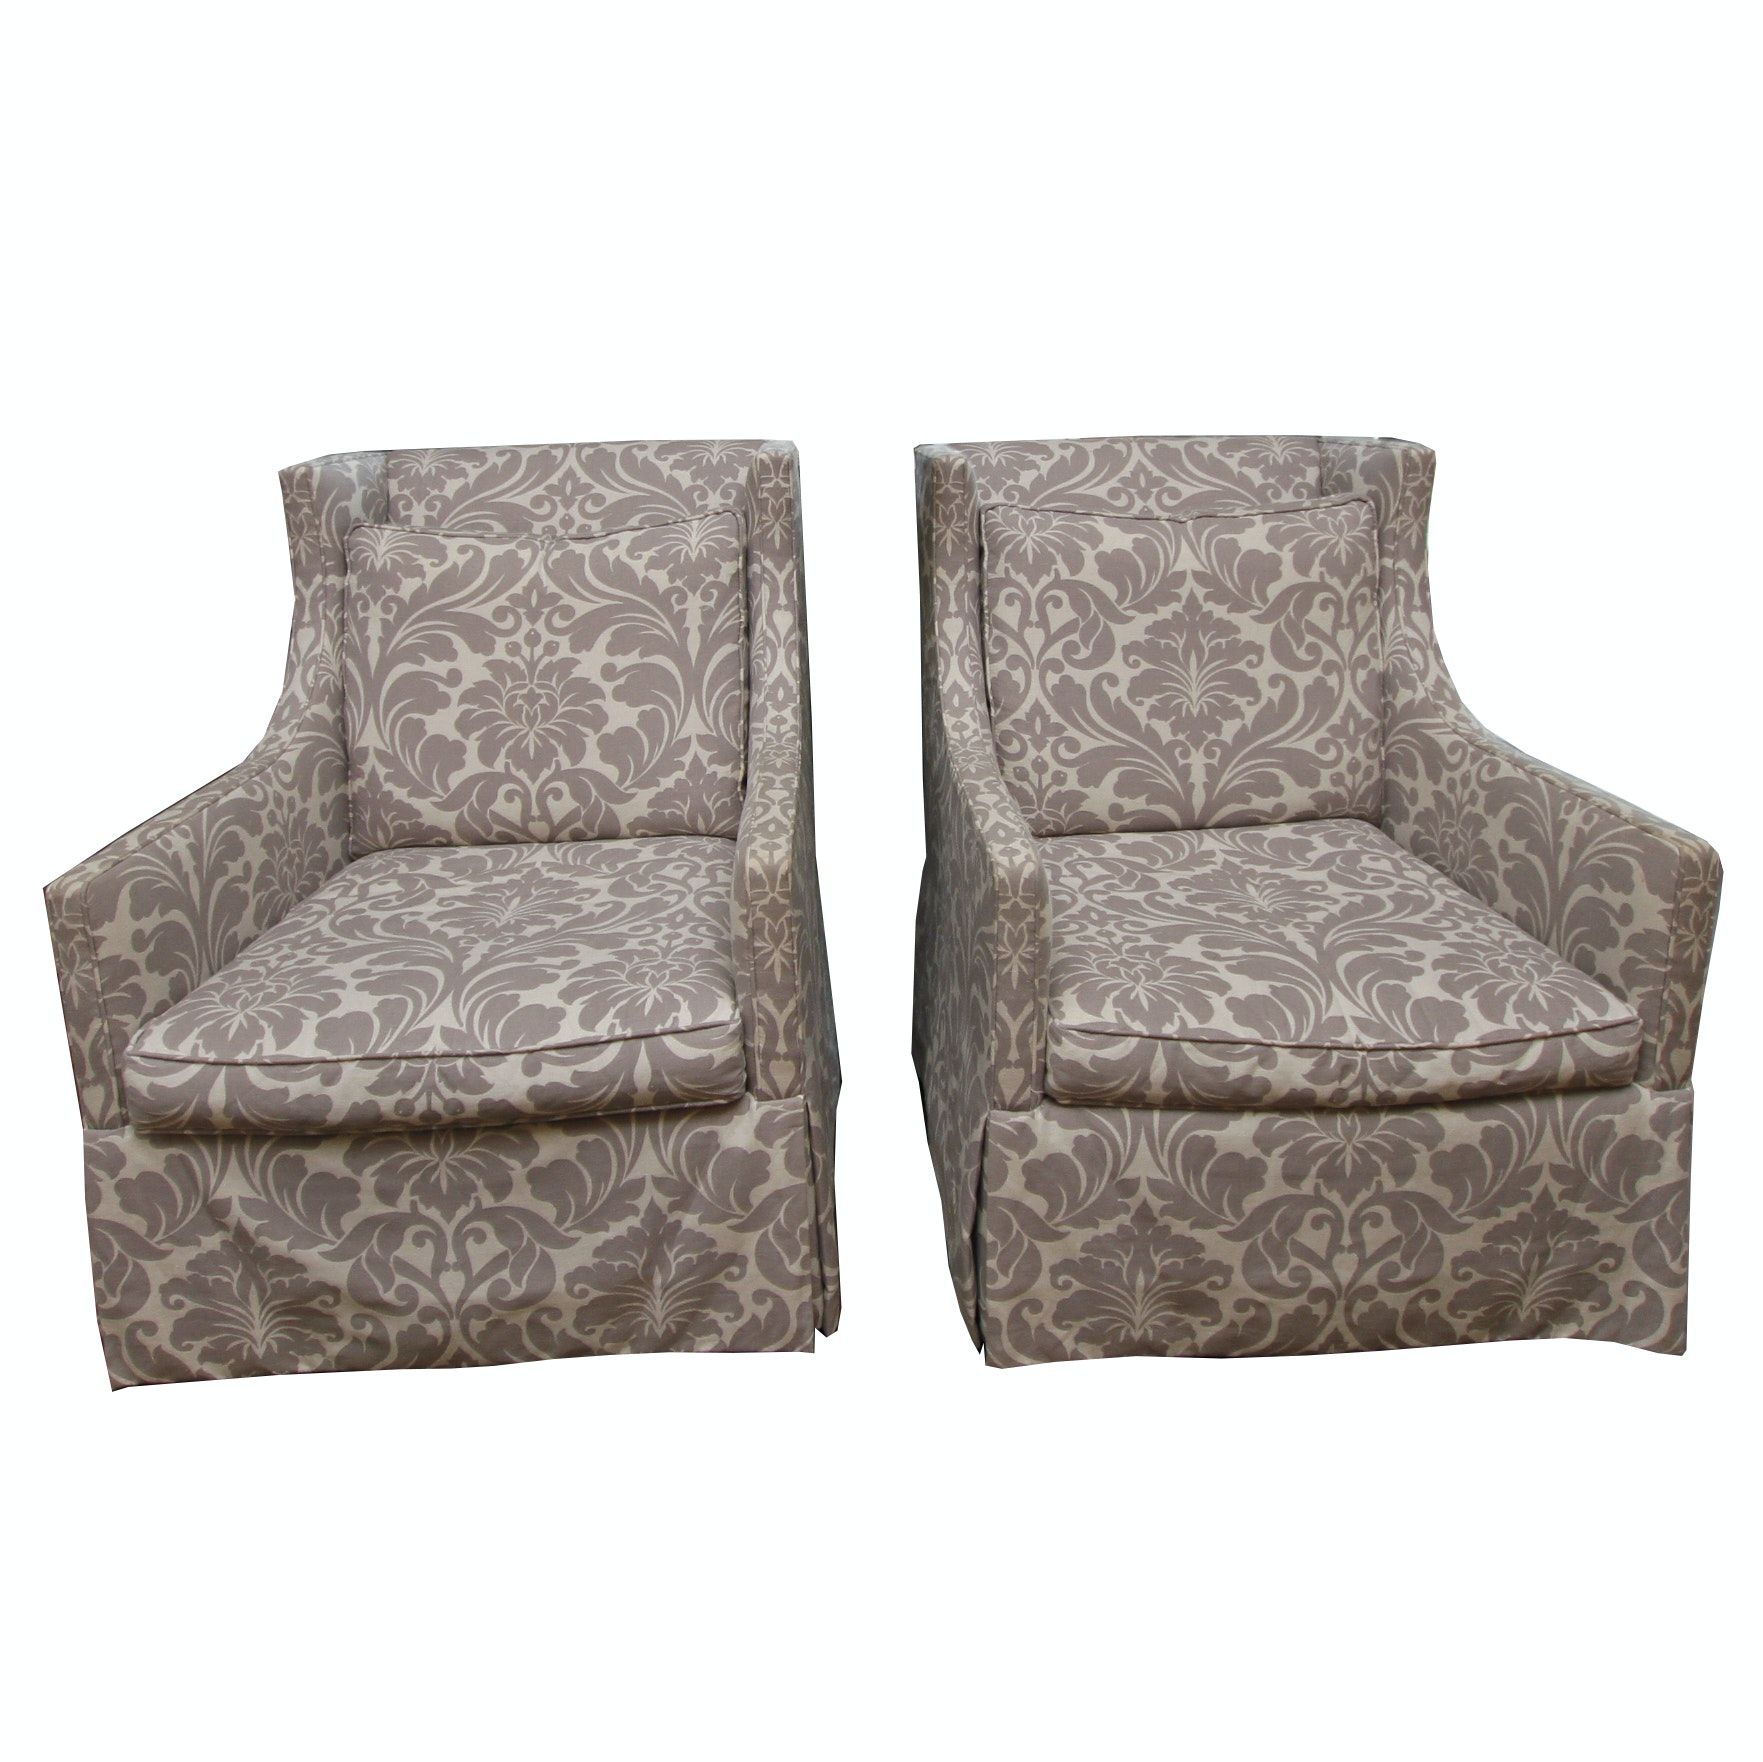 Upholstered Club Chairs by Lee Industries